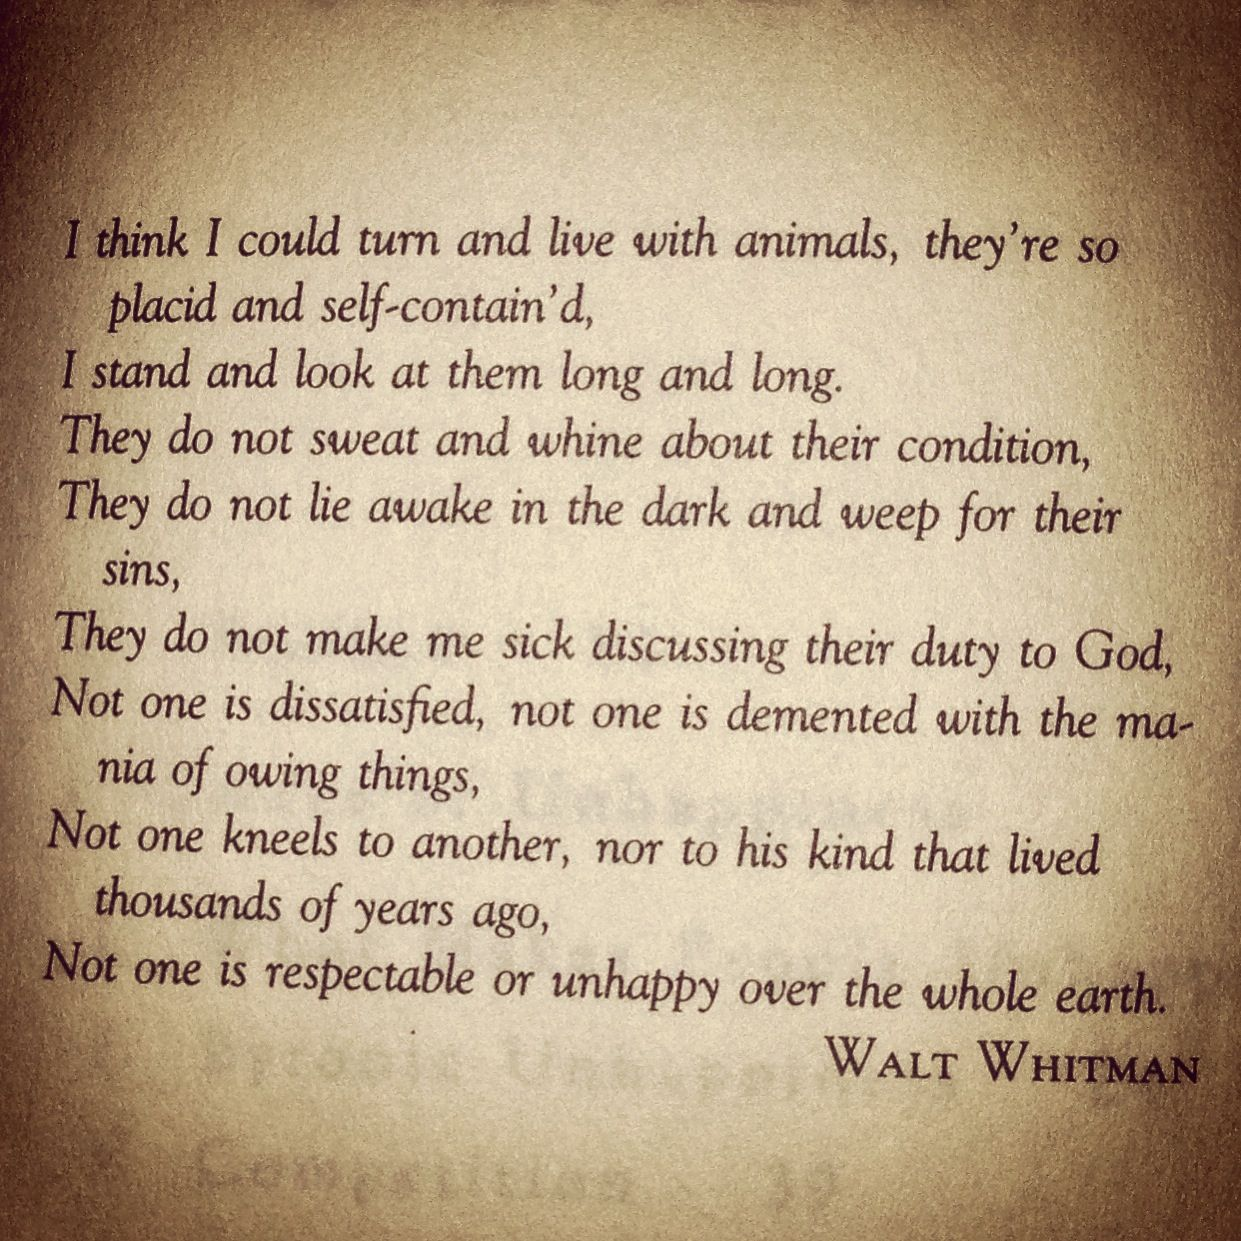 Walt Whitman Quotes Love: Animals - Walt Whitman